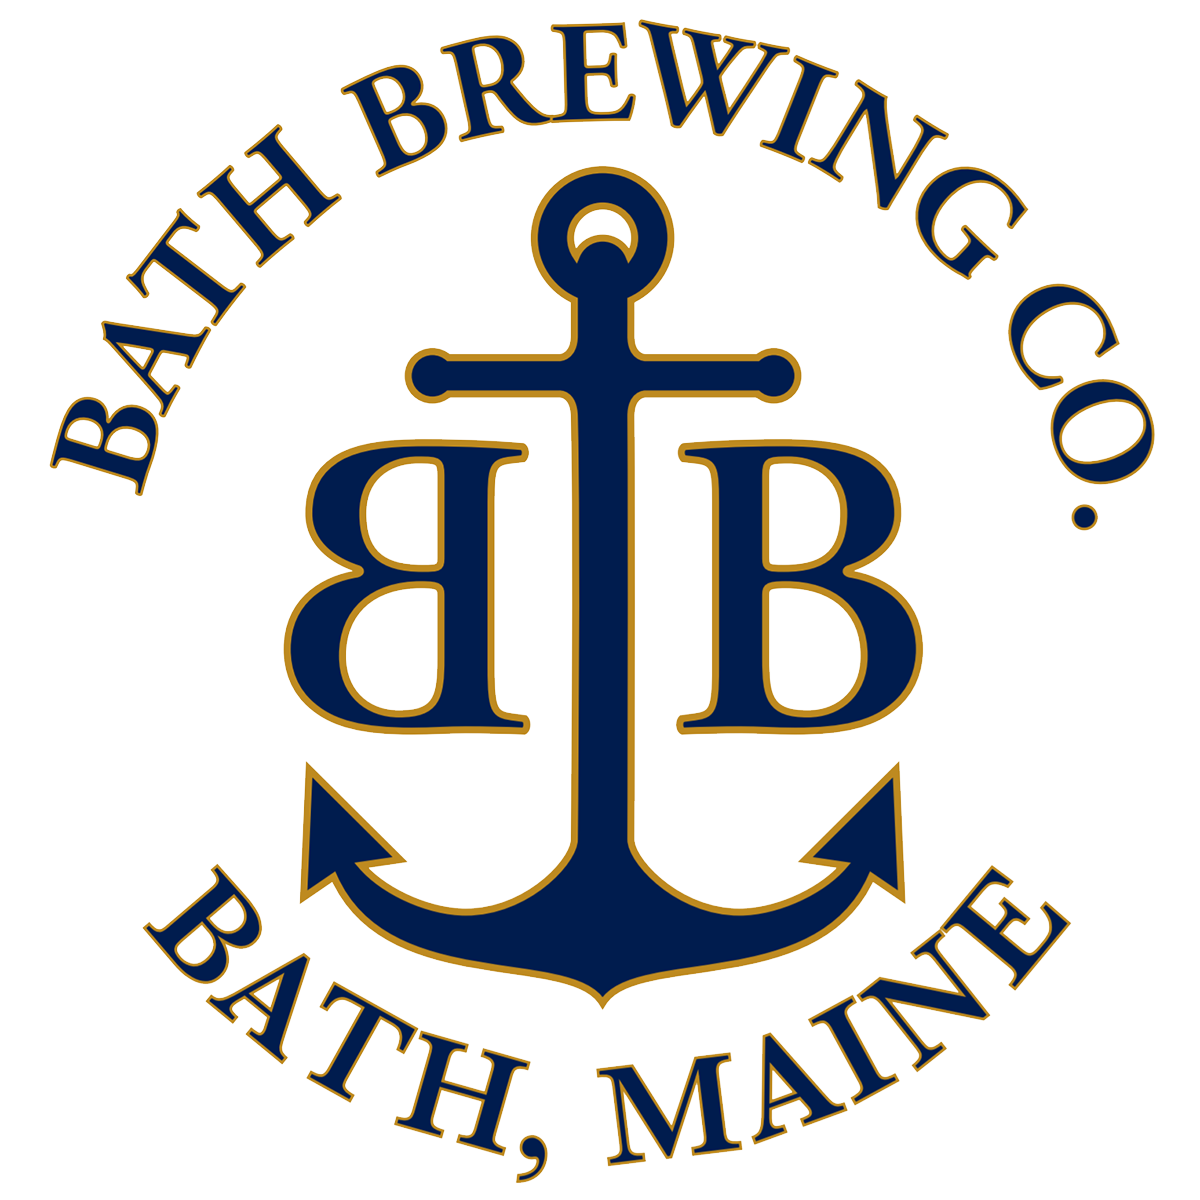 Bath Brewing Company